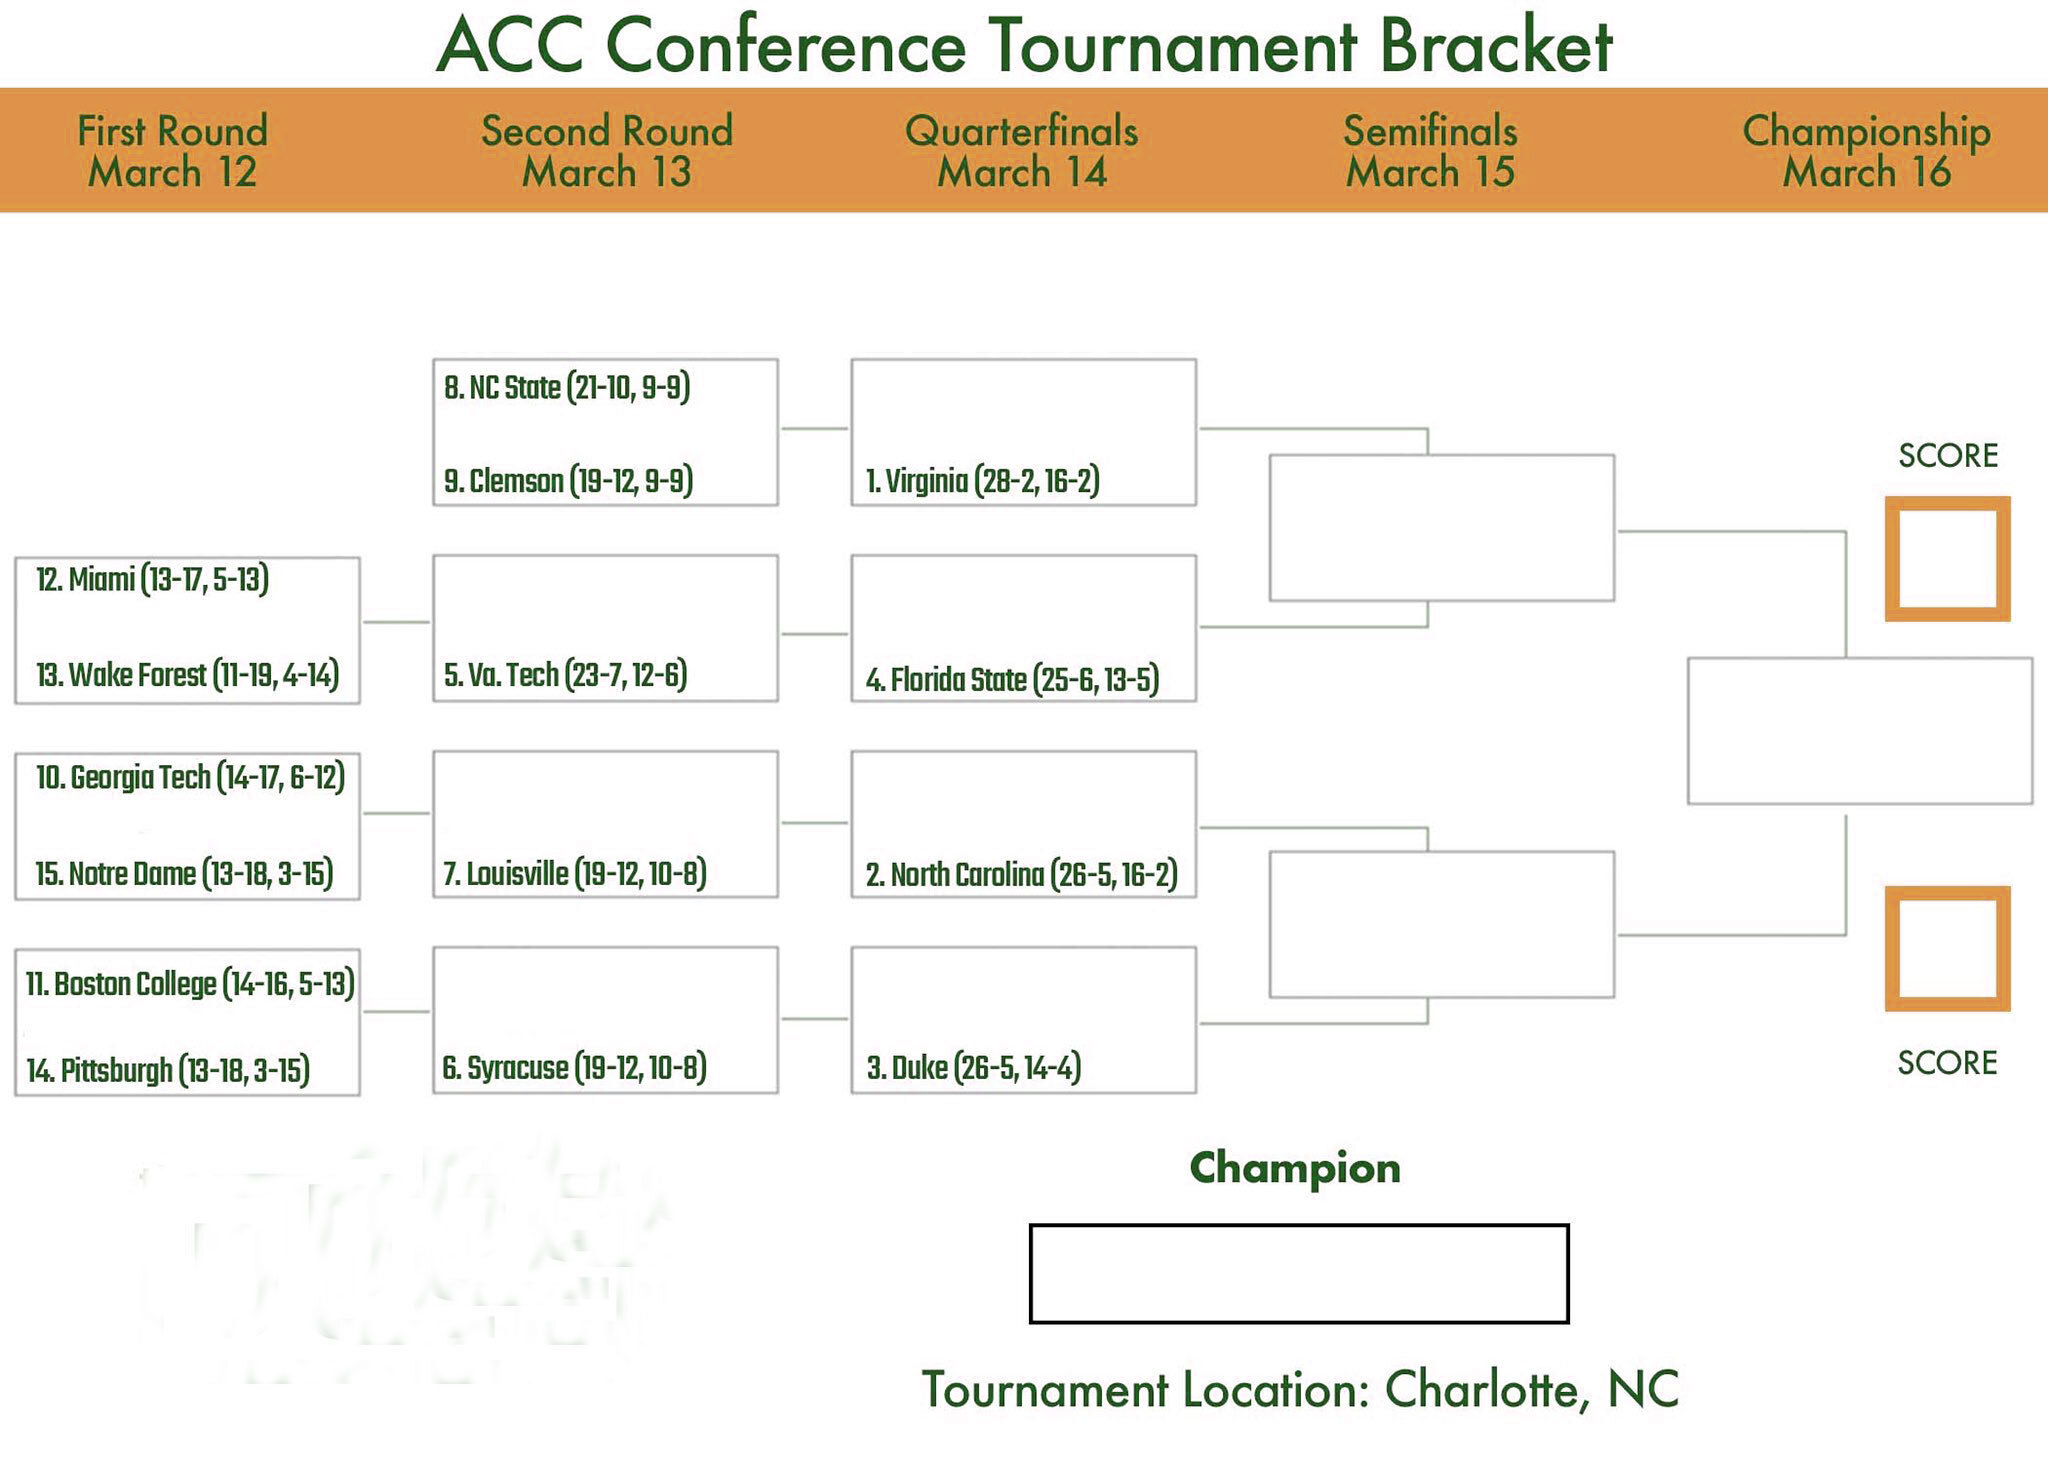 2019 ACC Conference Championship Bracket